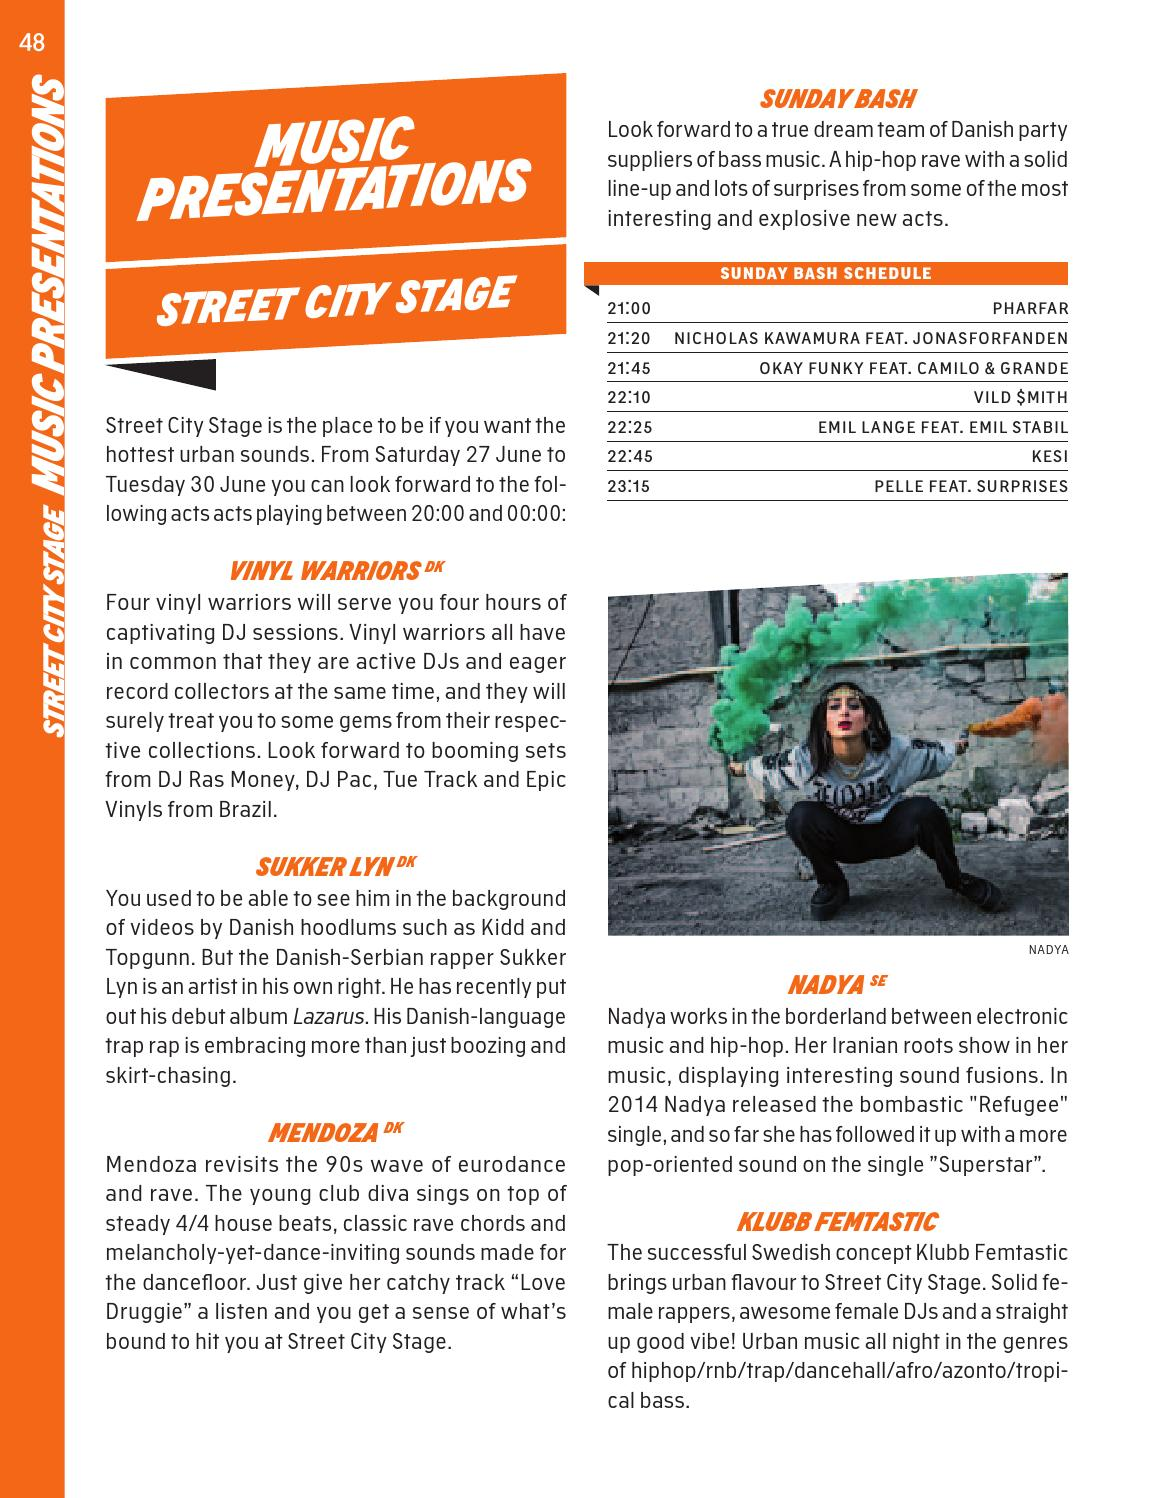 Roskilde Festival 15 — The Guide by Roskilde Festival - issuu